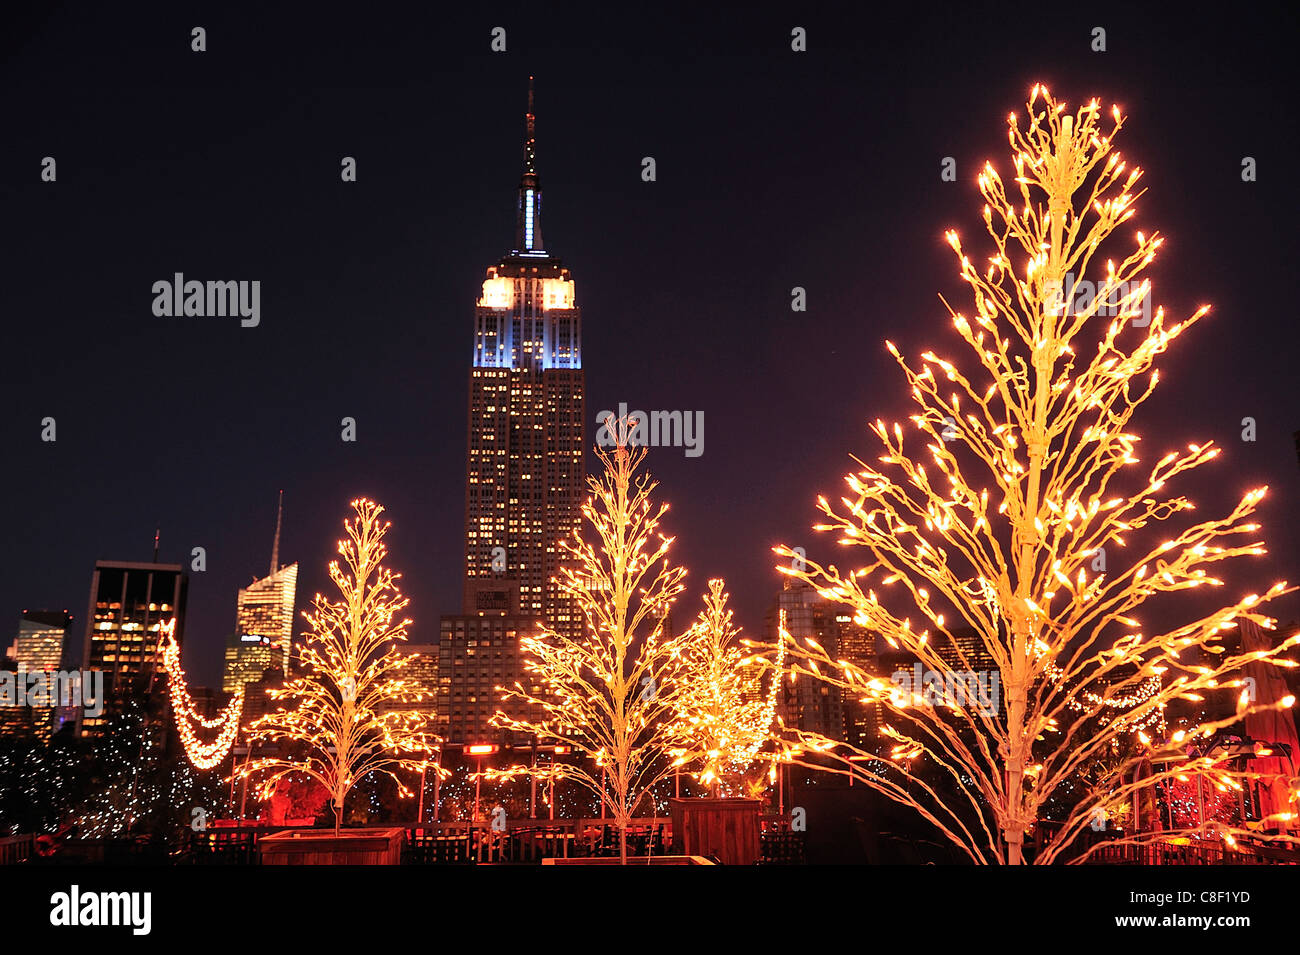 Noël, décoration, Empire State Building, Manhattan, New York, USA, United States, Amérique, nuit Photo Stock